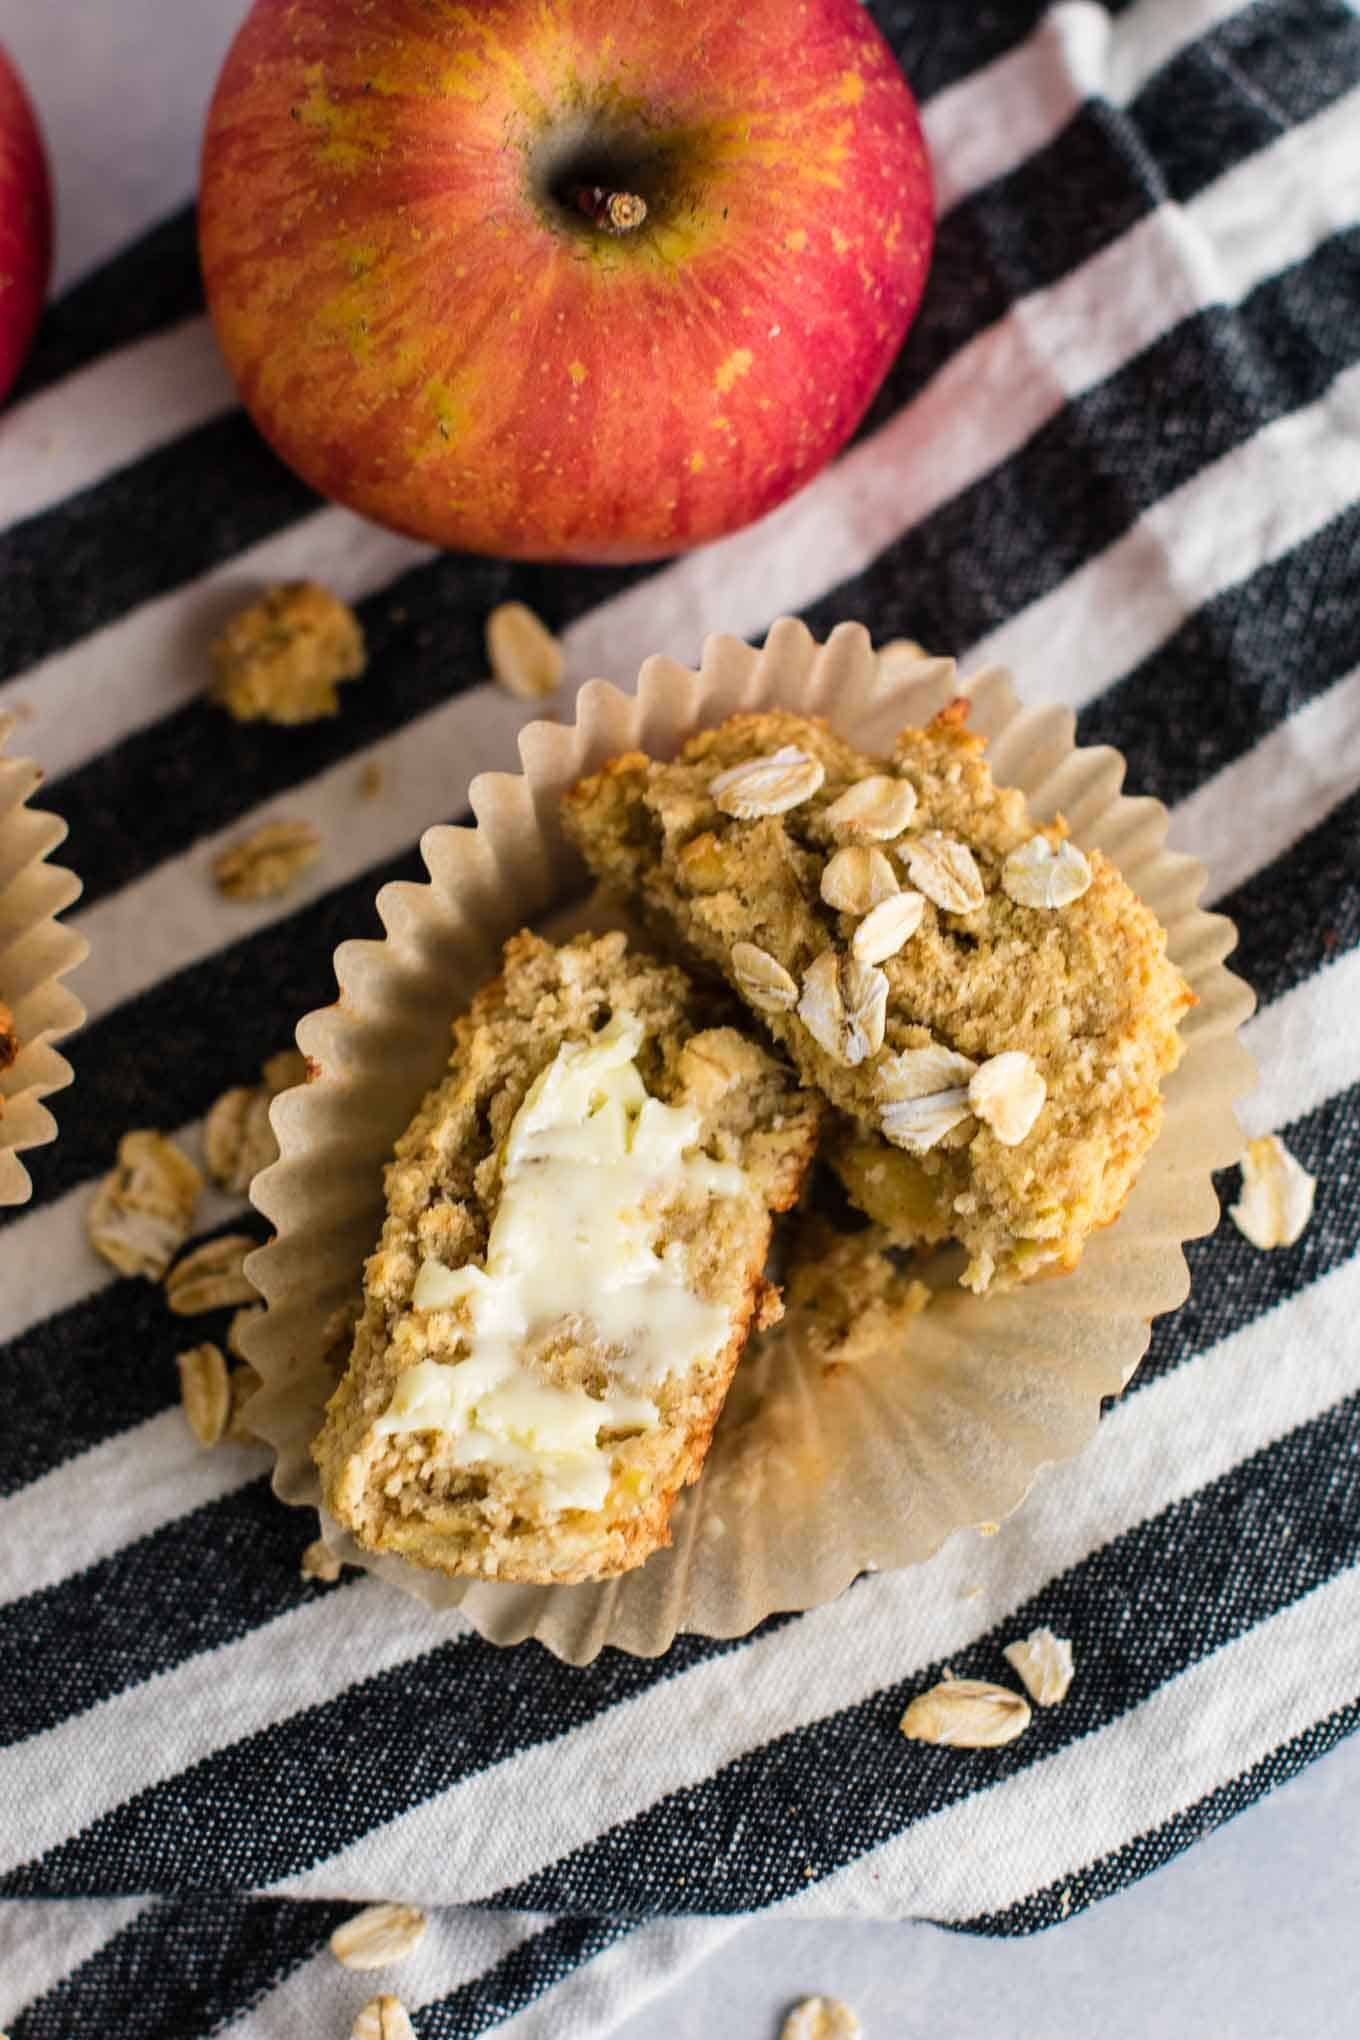 Healthy Apple Muffins Recipe with coconut flour and oat flour. Naturally gluten free and so soft and delicious. They taste like apple pie to me! #glutenfree #applemuffins #oatflour #coconutflour #glutenfreemuffins #breakfast #glutenfreebreakfast #dairyfree